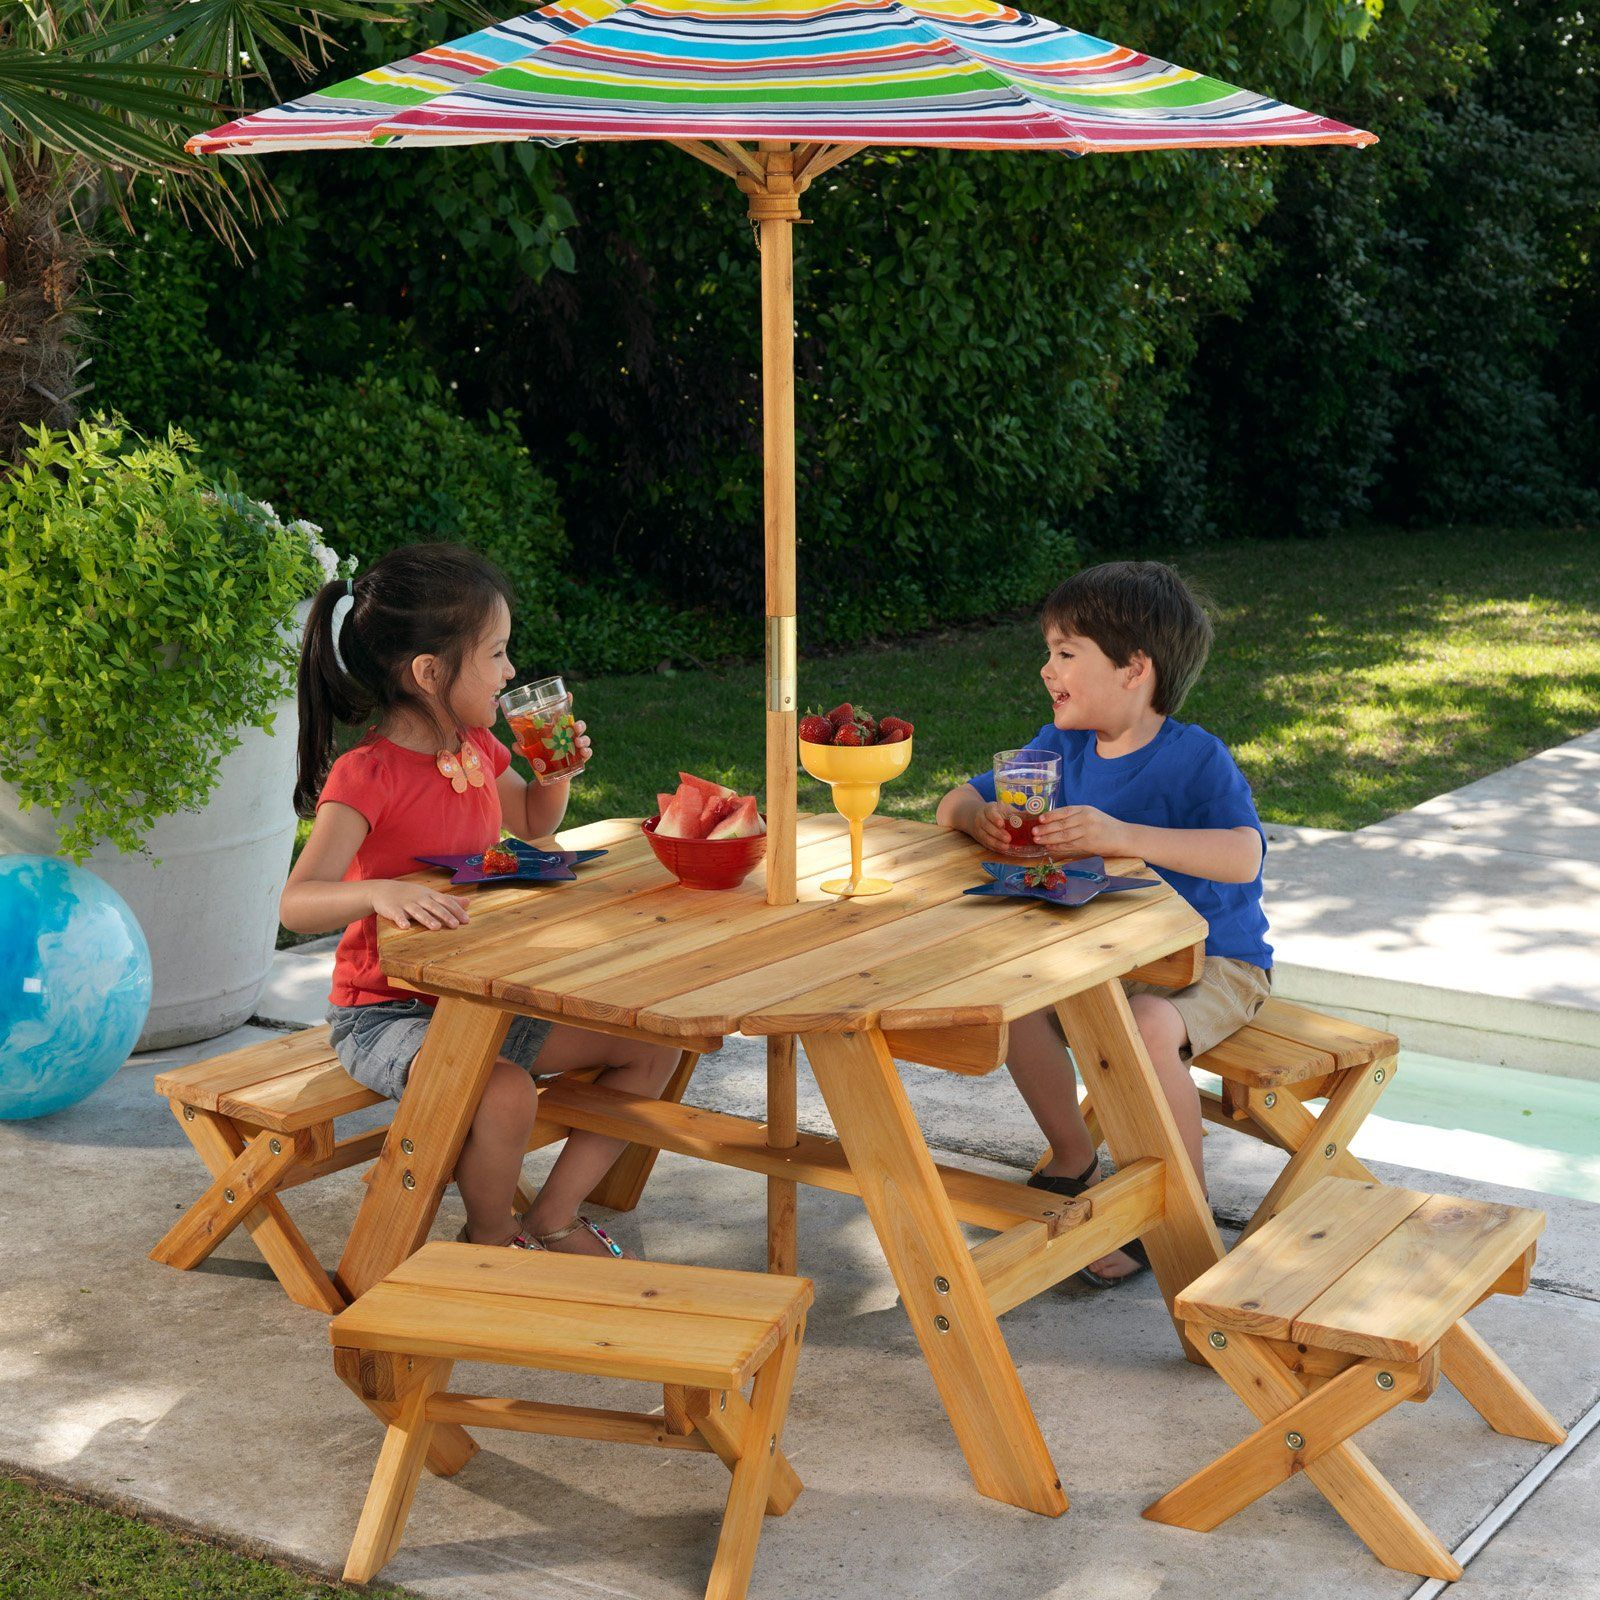 KidKraft Octagon Patio Table and Stools with Striped Umbrella $164.99 & KidKraft Octagon Patio Table and Stools with Striped Umbrella ...